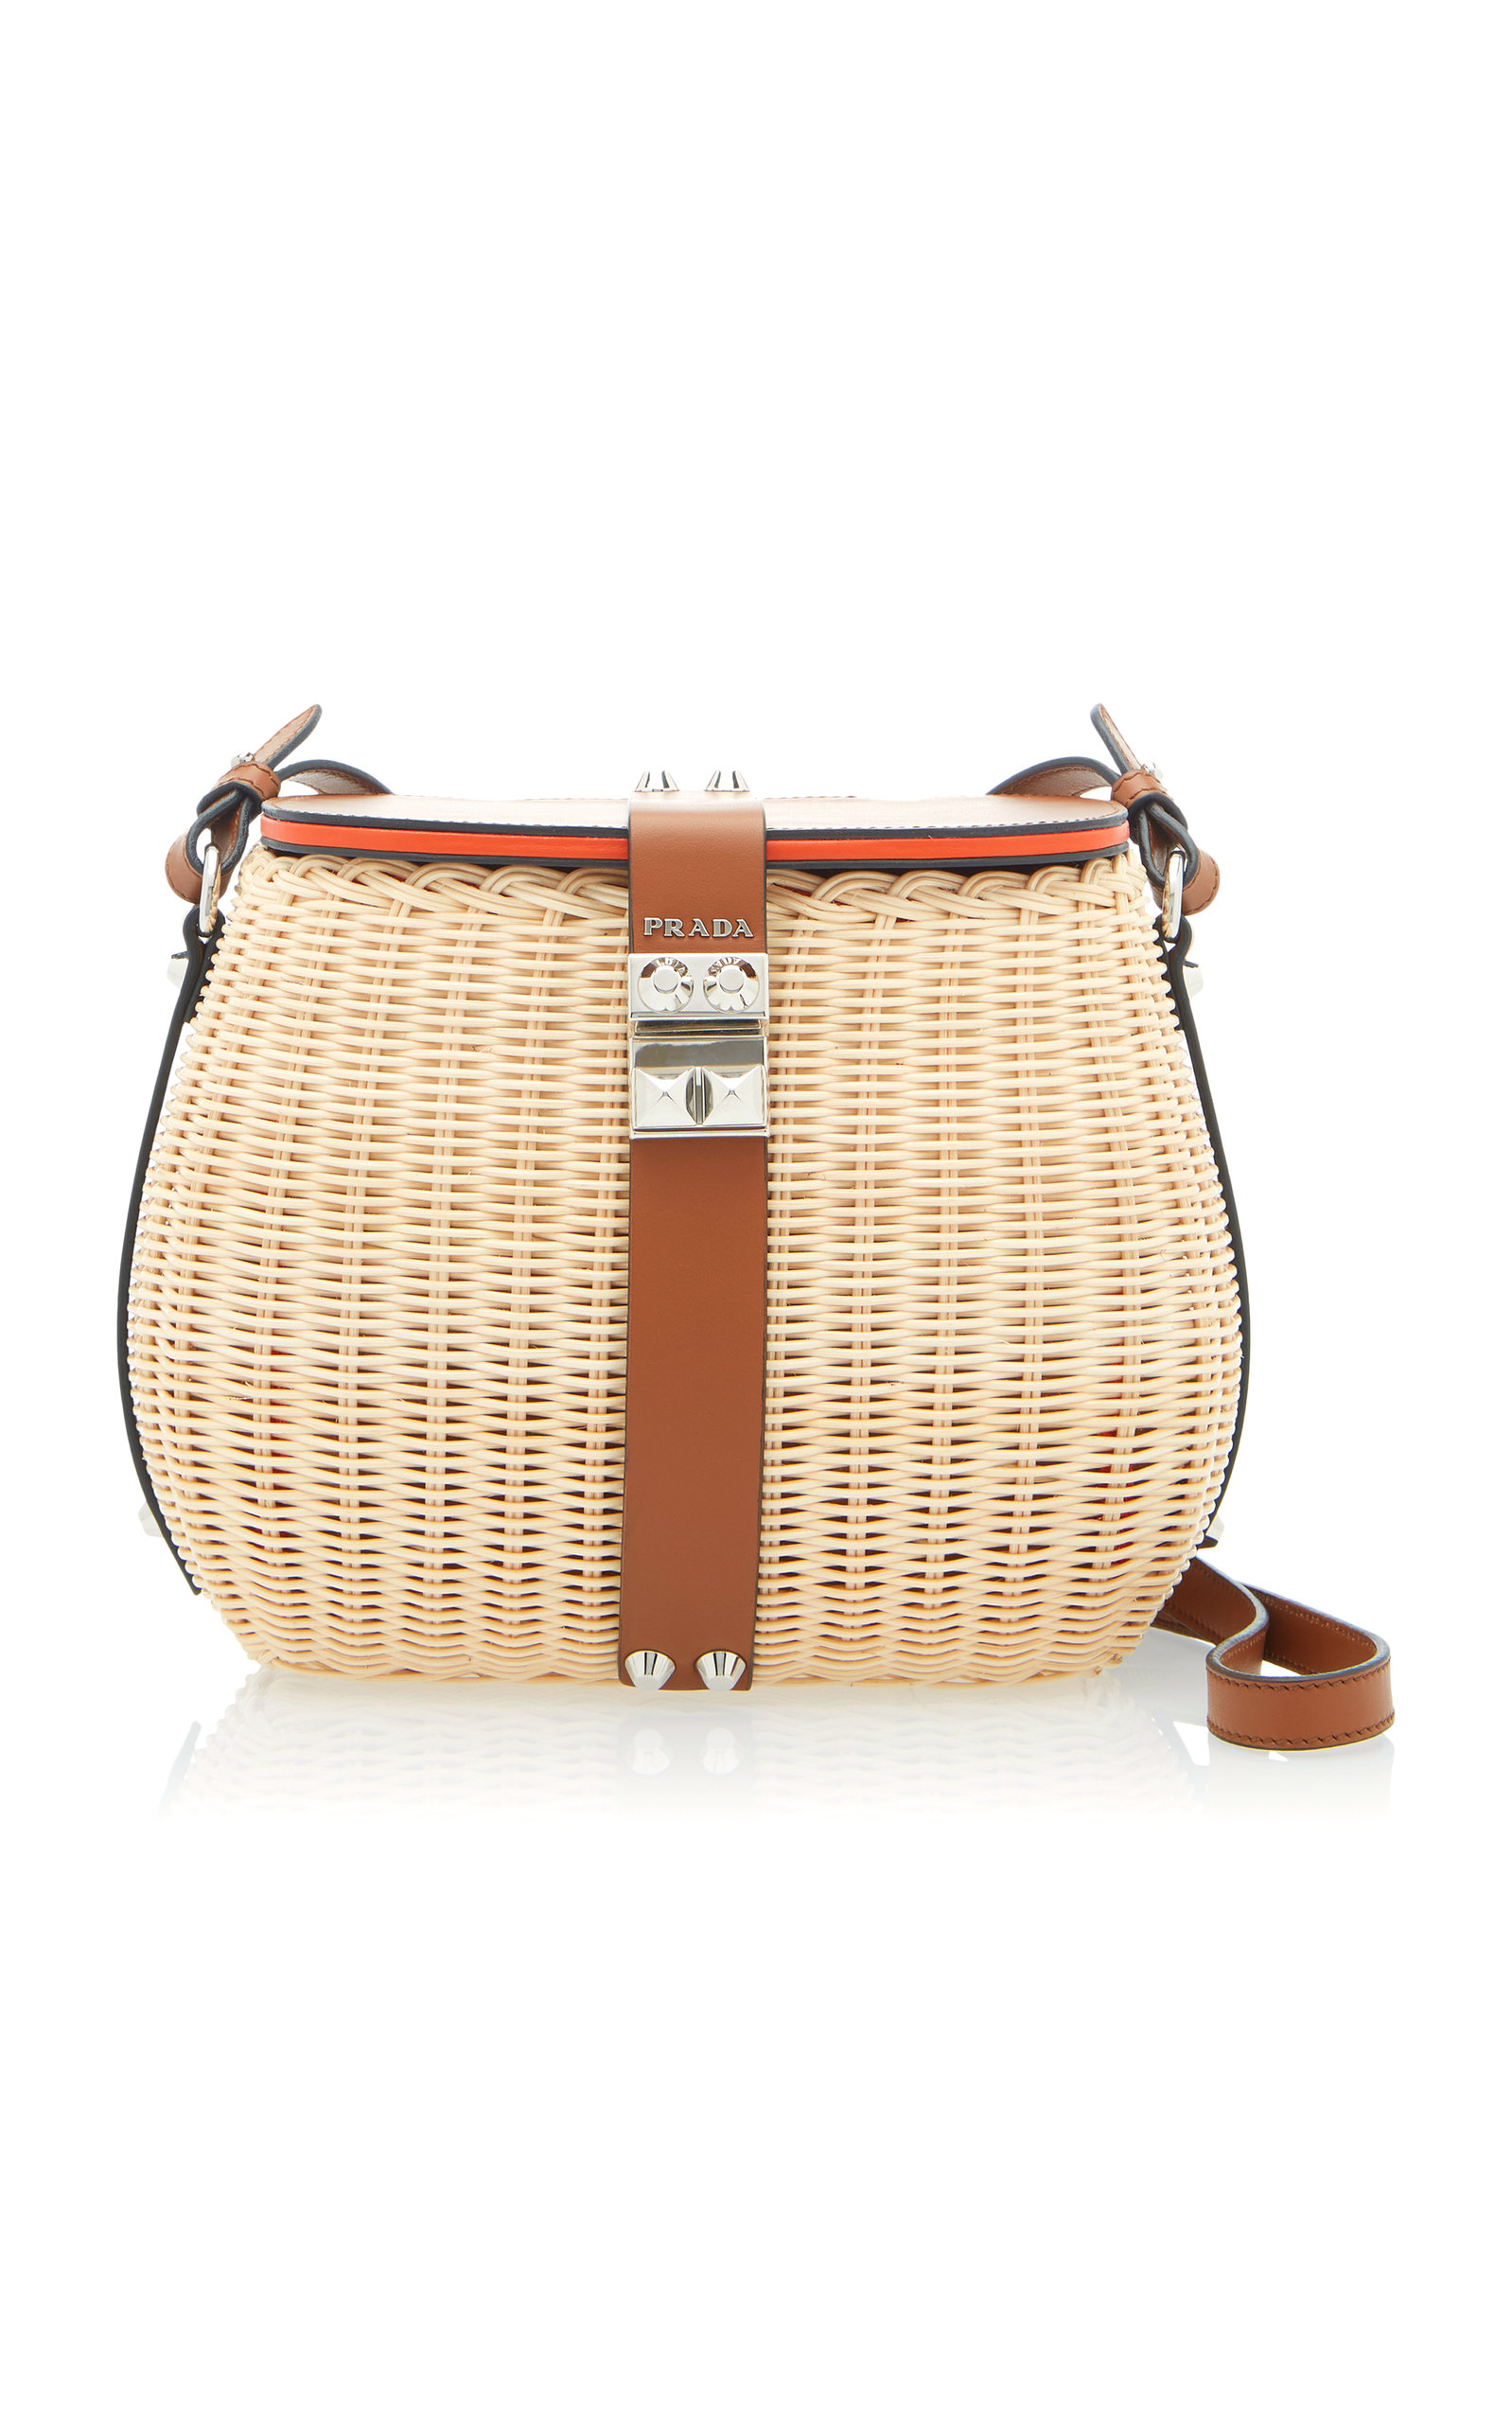 600c5850c1d1 Leather-Trimmed Raffia Shoulder Bag by Prada | Moda Operandi